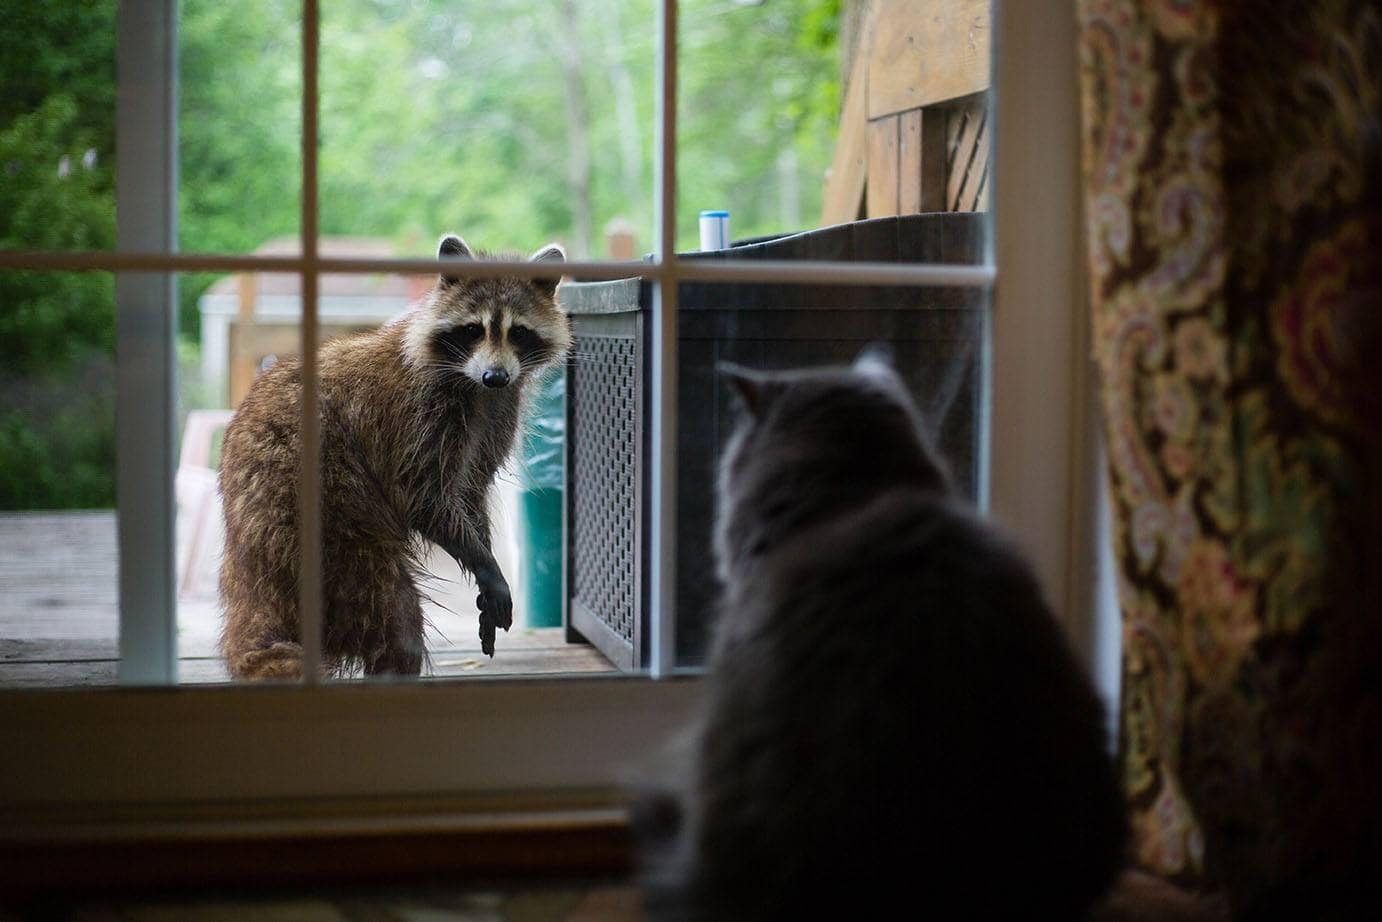 cat looking at racoon outside